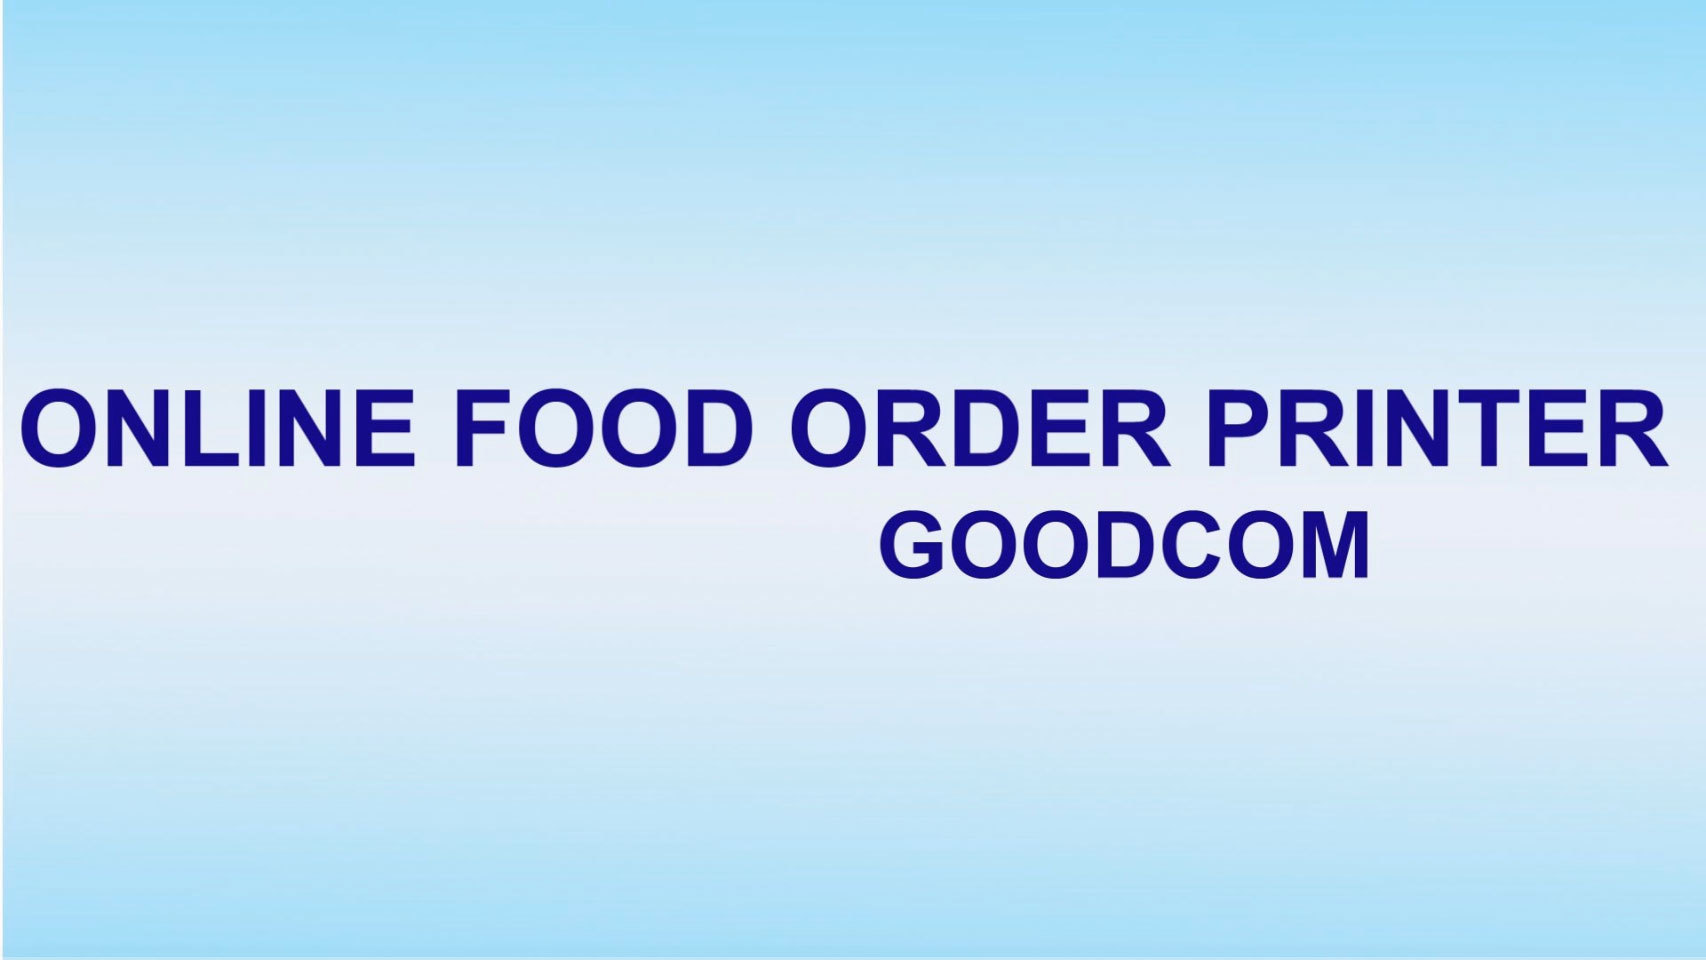 Goodcom Online Order Printer